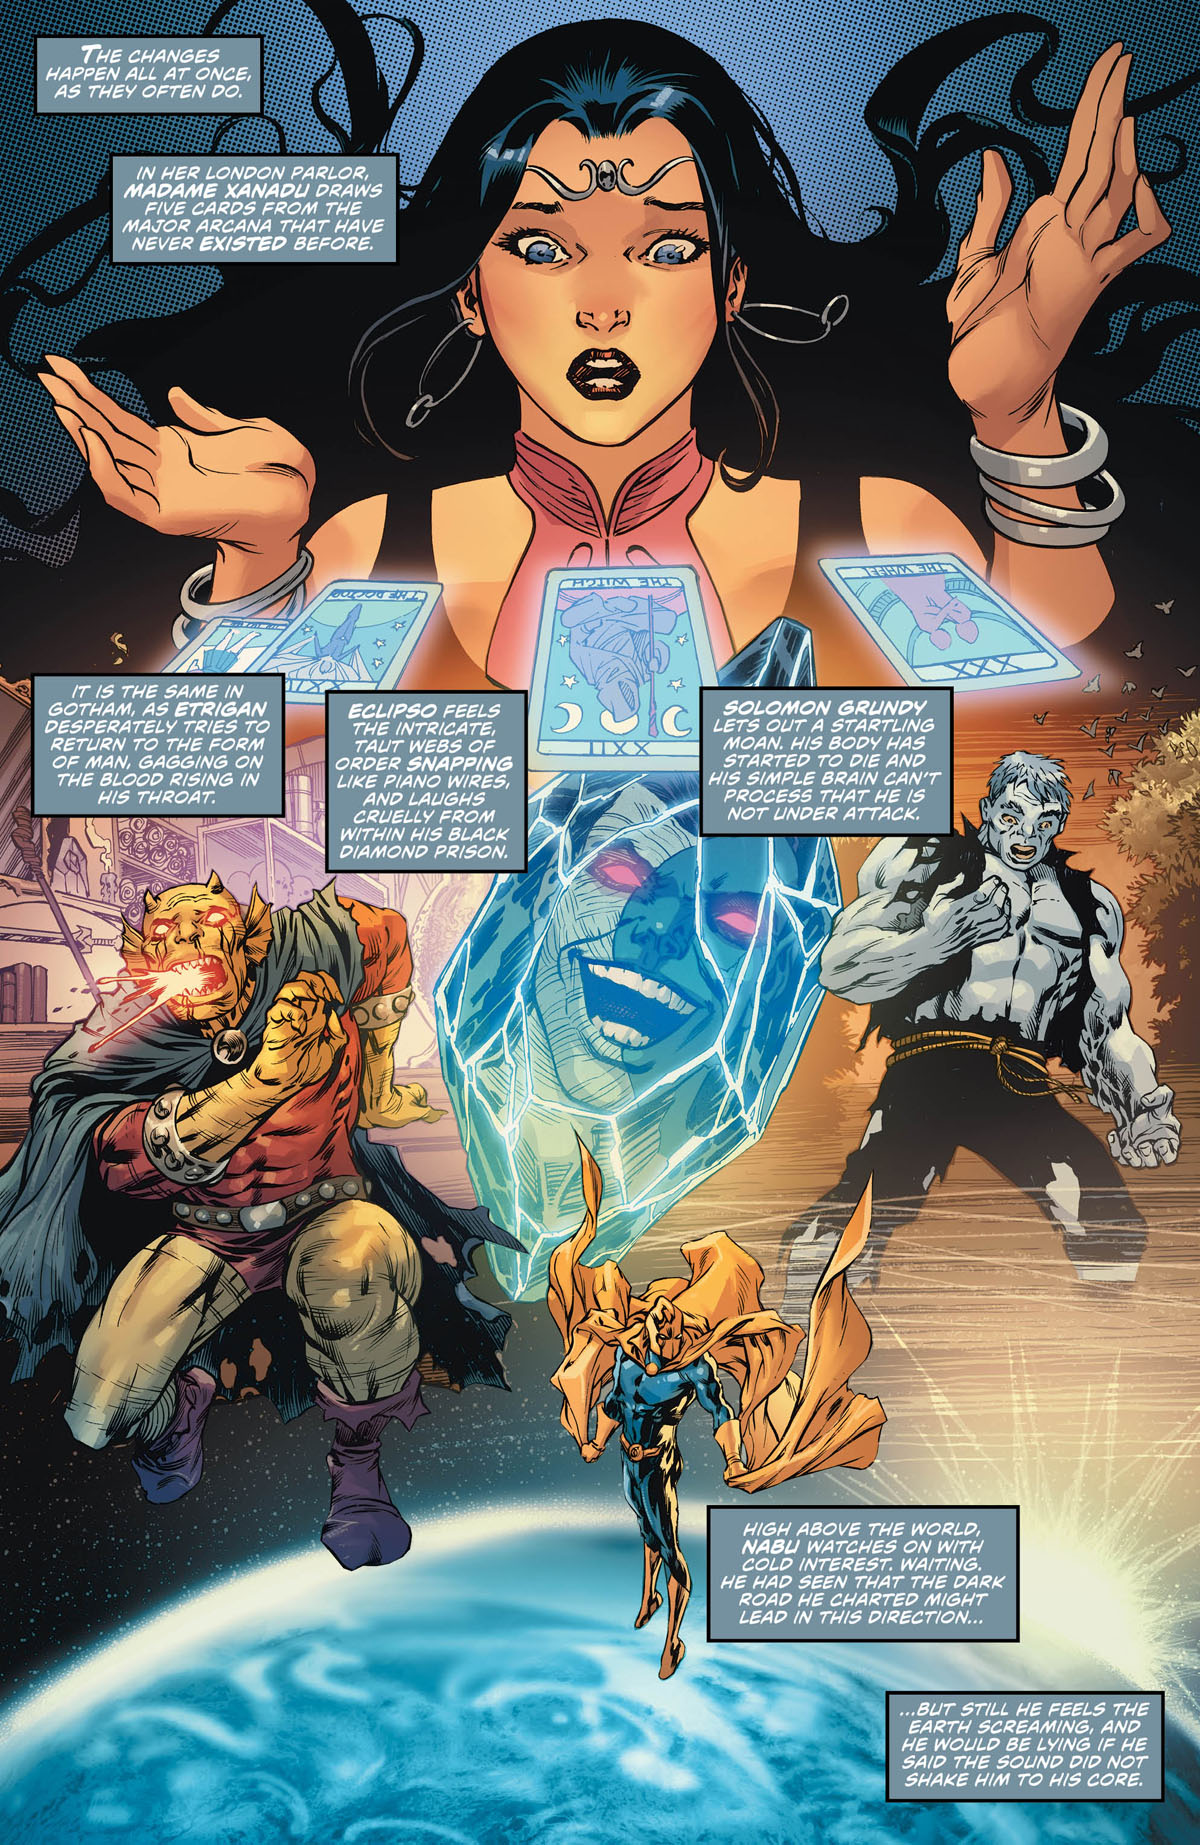 Justice League Dark Wonder Woman: The Witching Hour #1 page 1